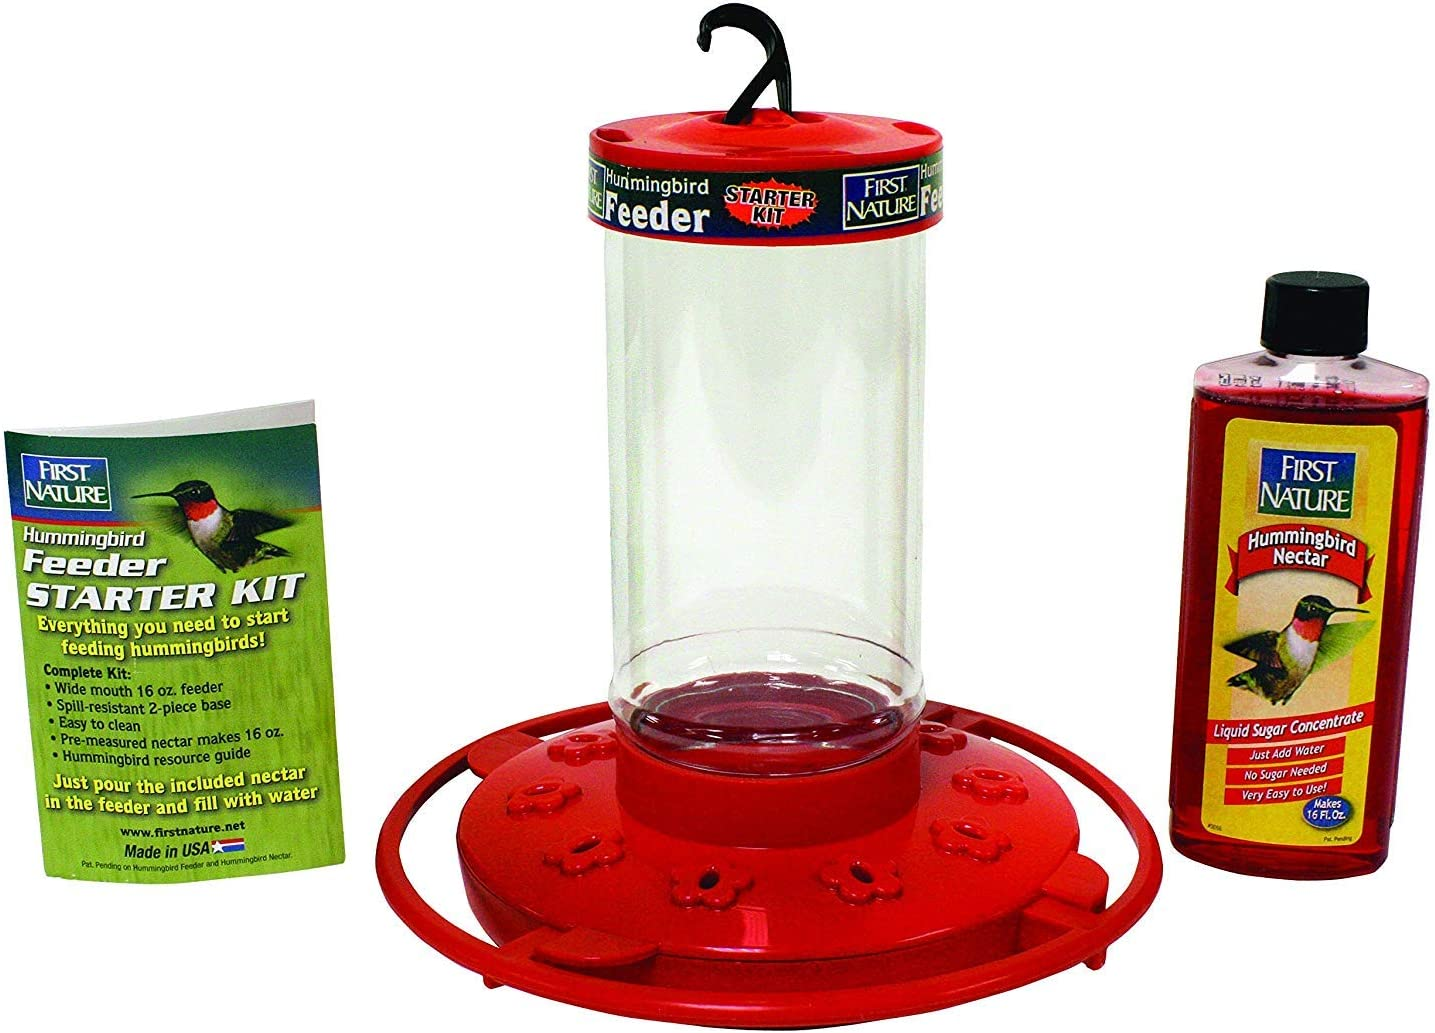 First Nature 16 oz. Hummingbird Feeder Red - Including a 4 Oz Hummingbird Concentrate Nectar That Makes 16 Fl.Oz